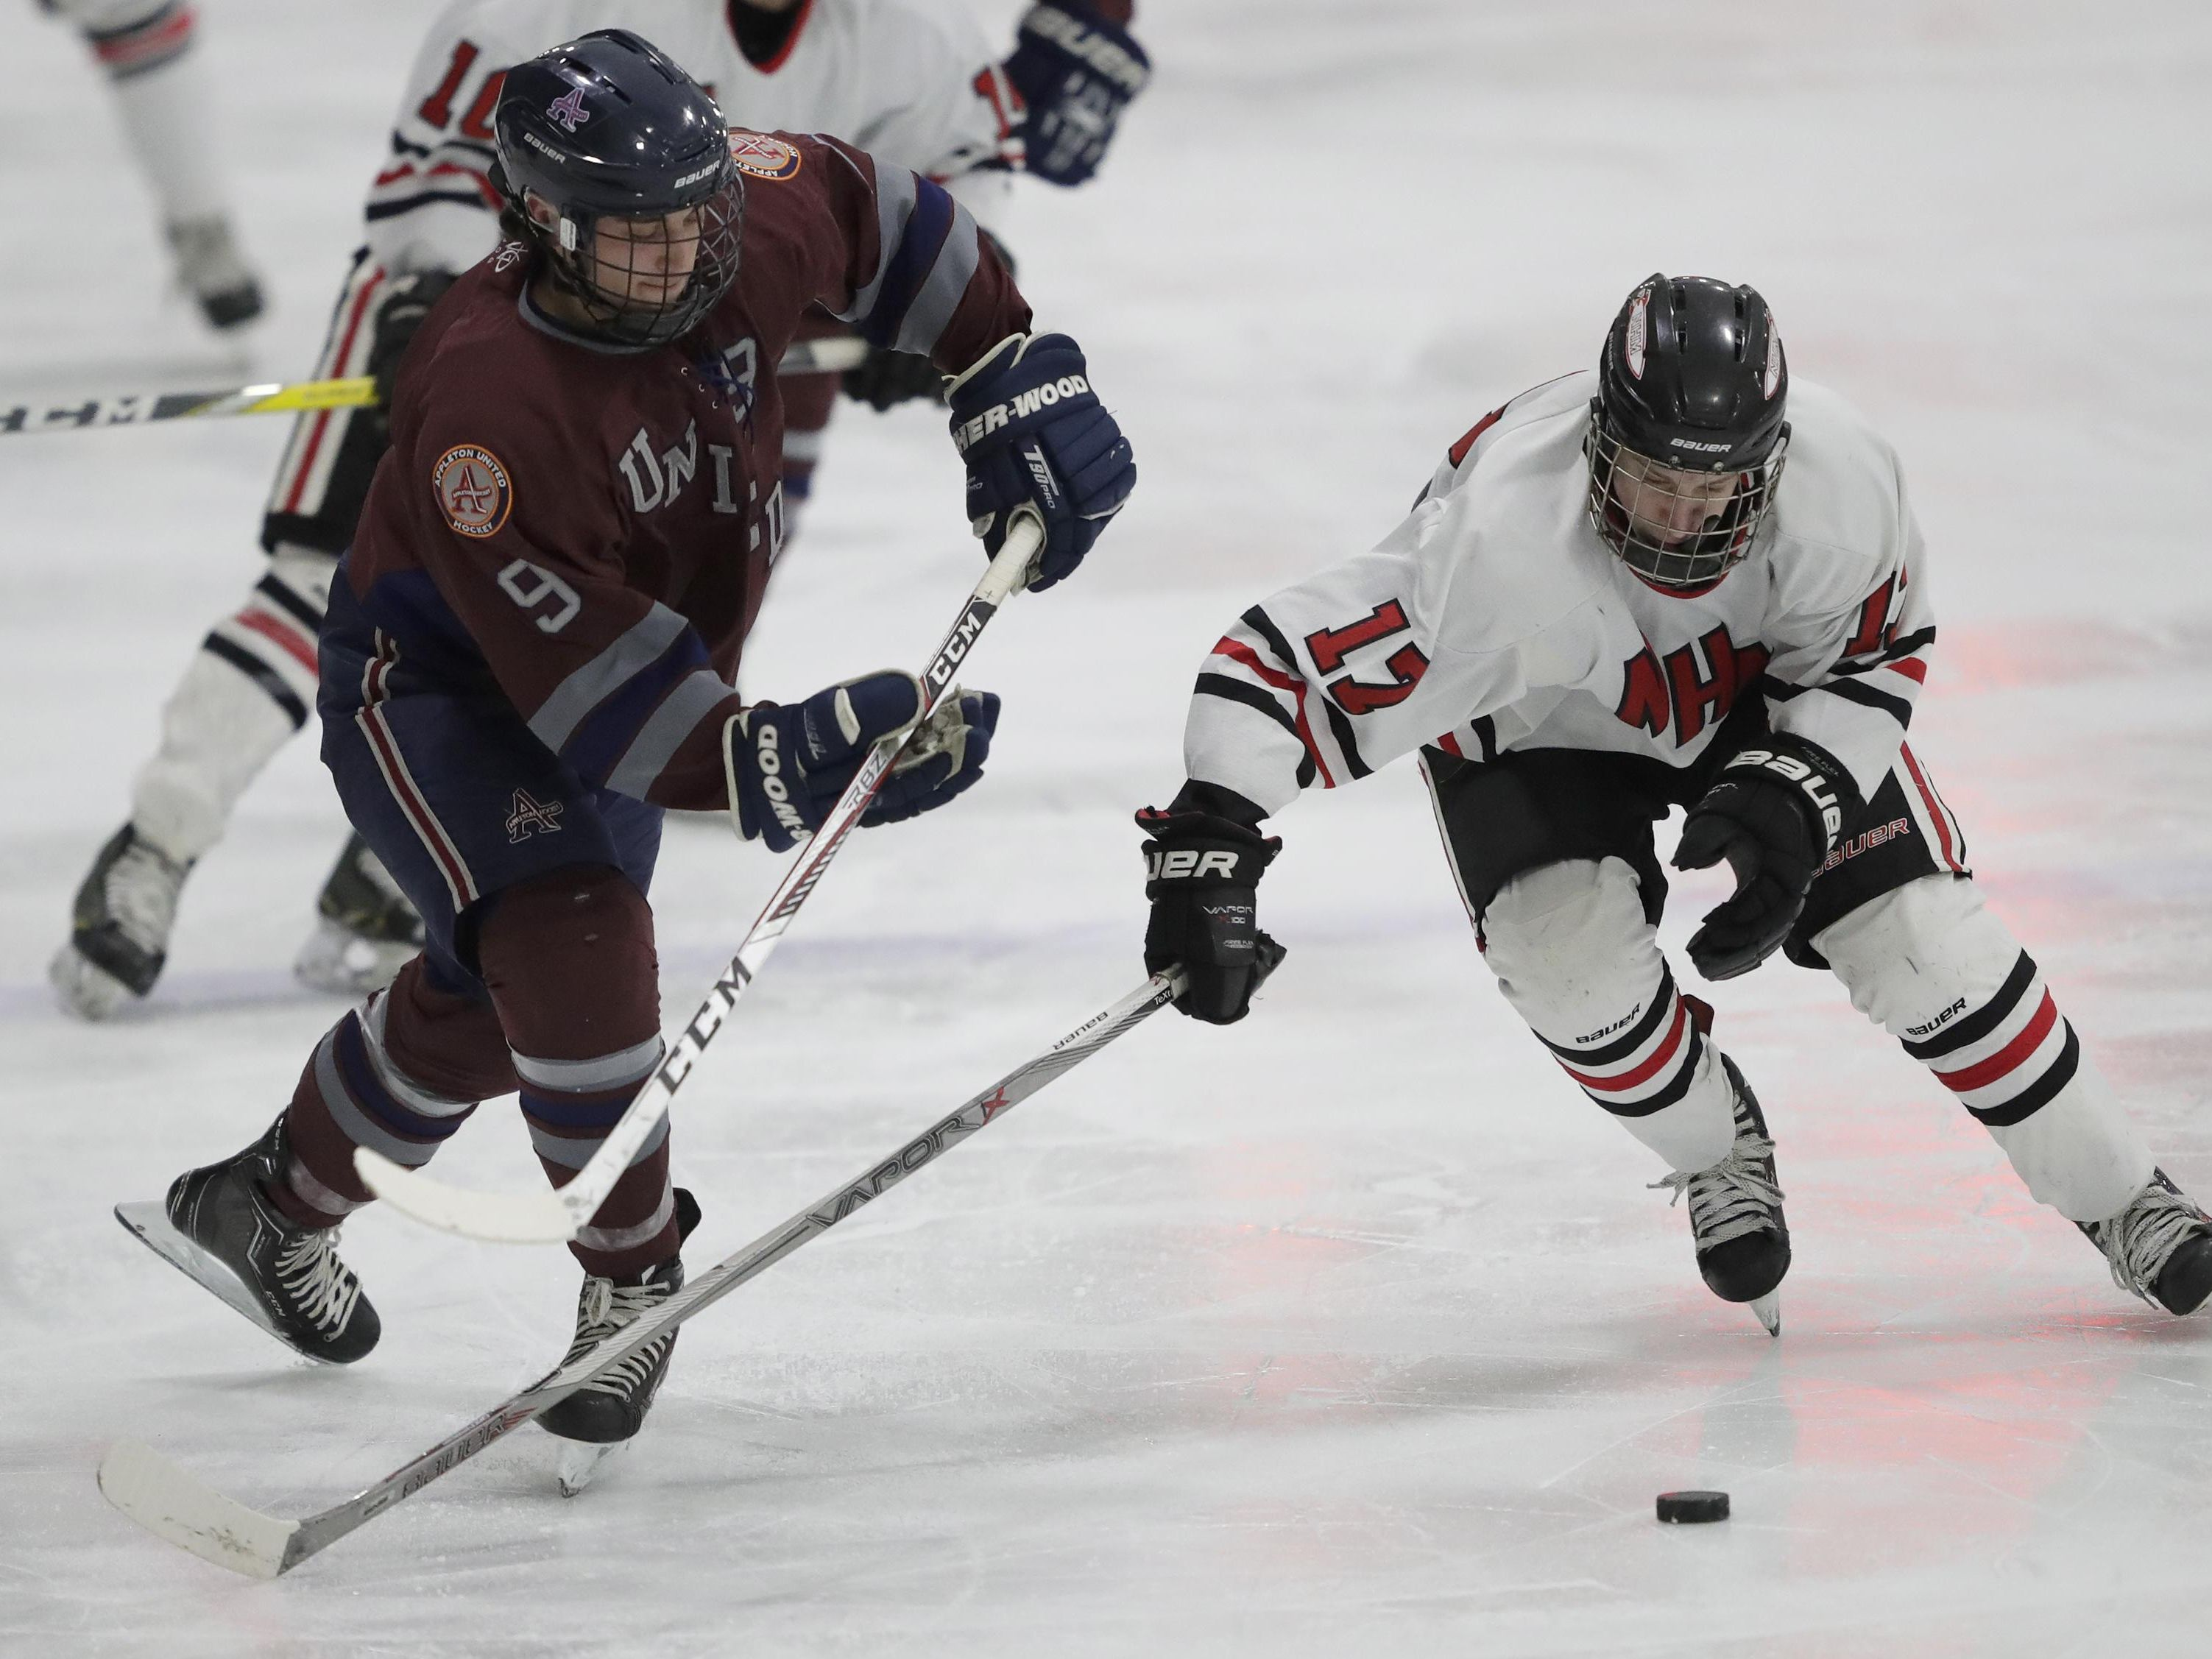 Appleton United's Mitchell Lund, left, battles for the puck against Neenah/Hortonville/Menasha's Eric Alberts on Tuesday.